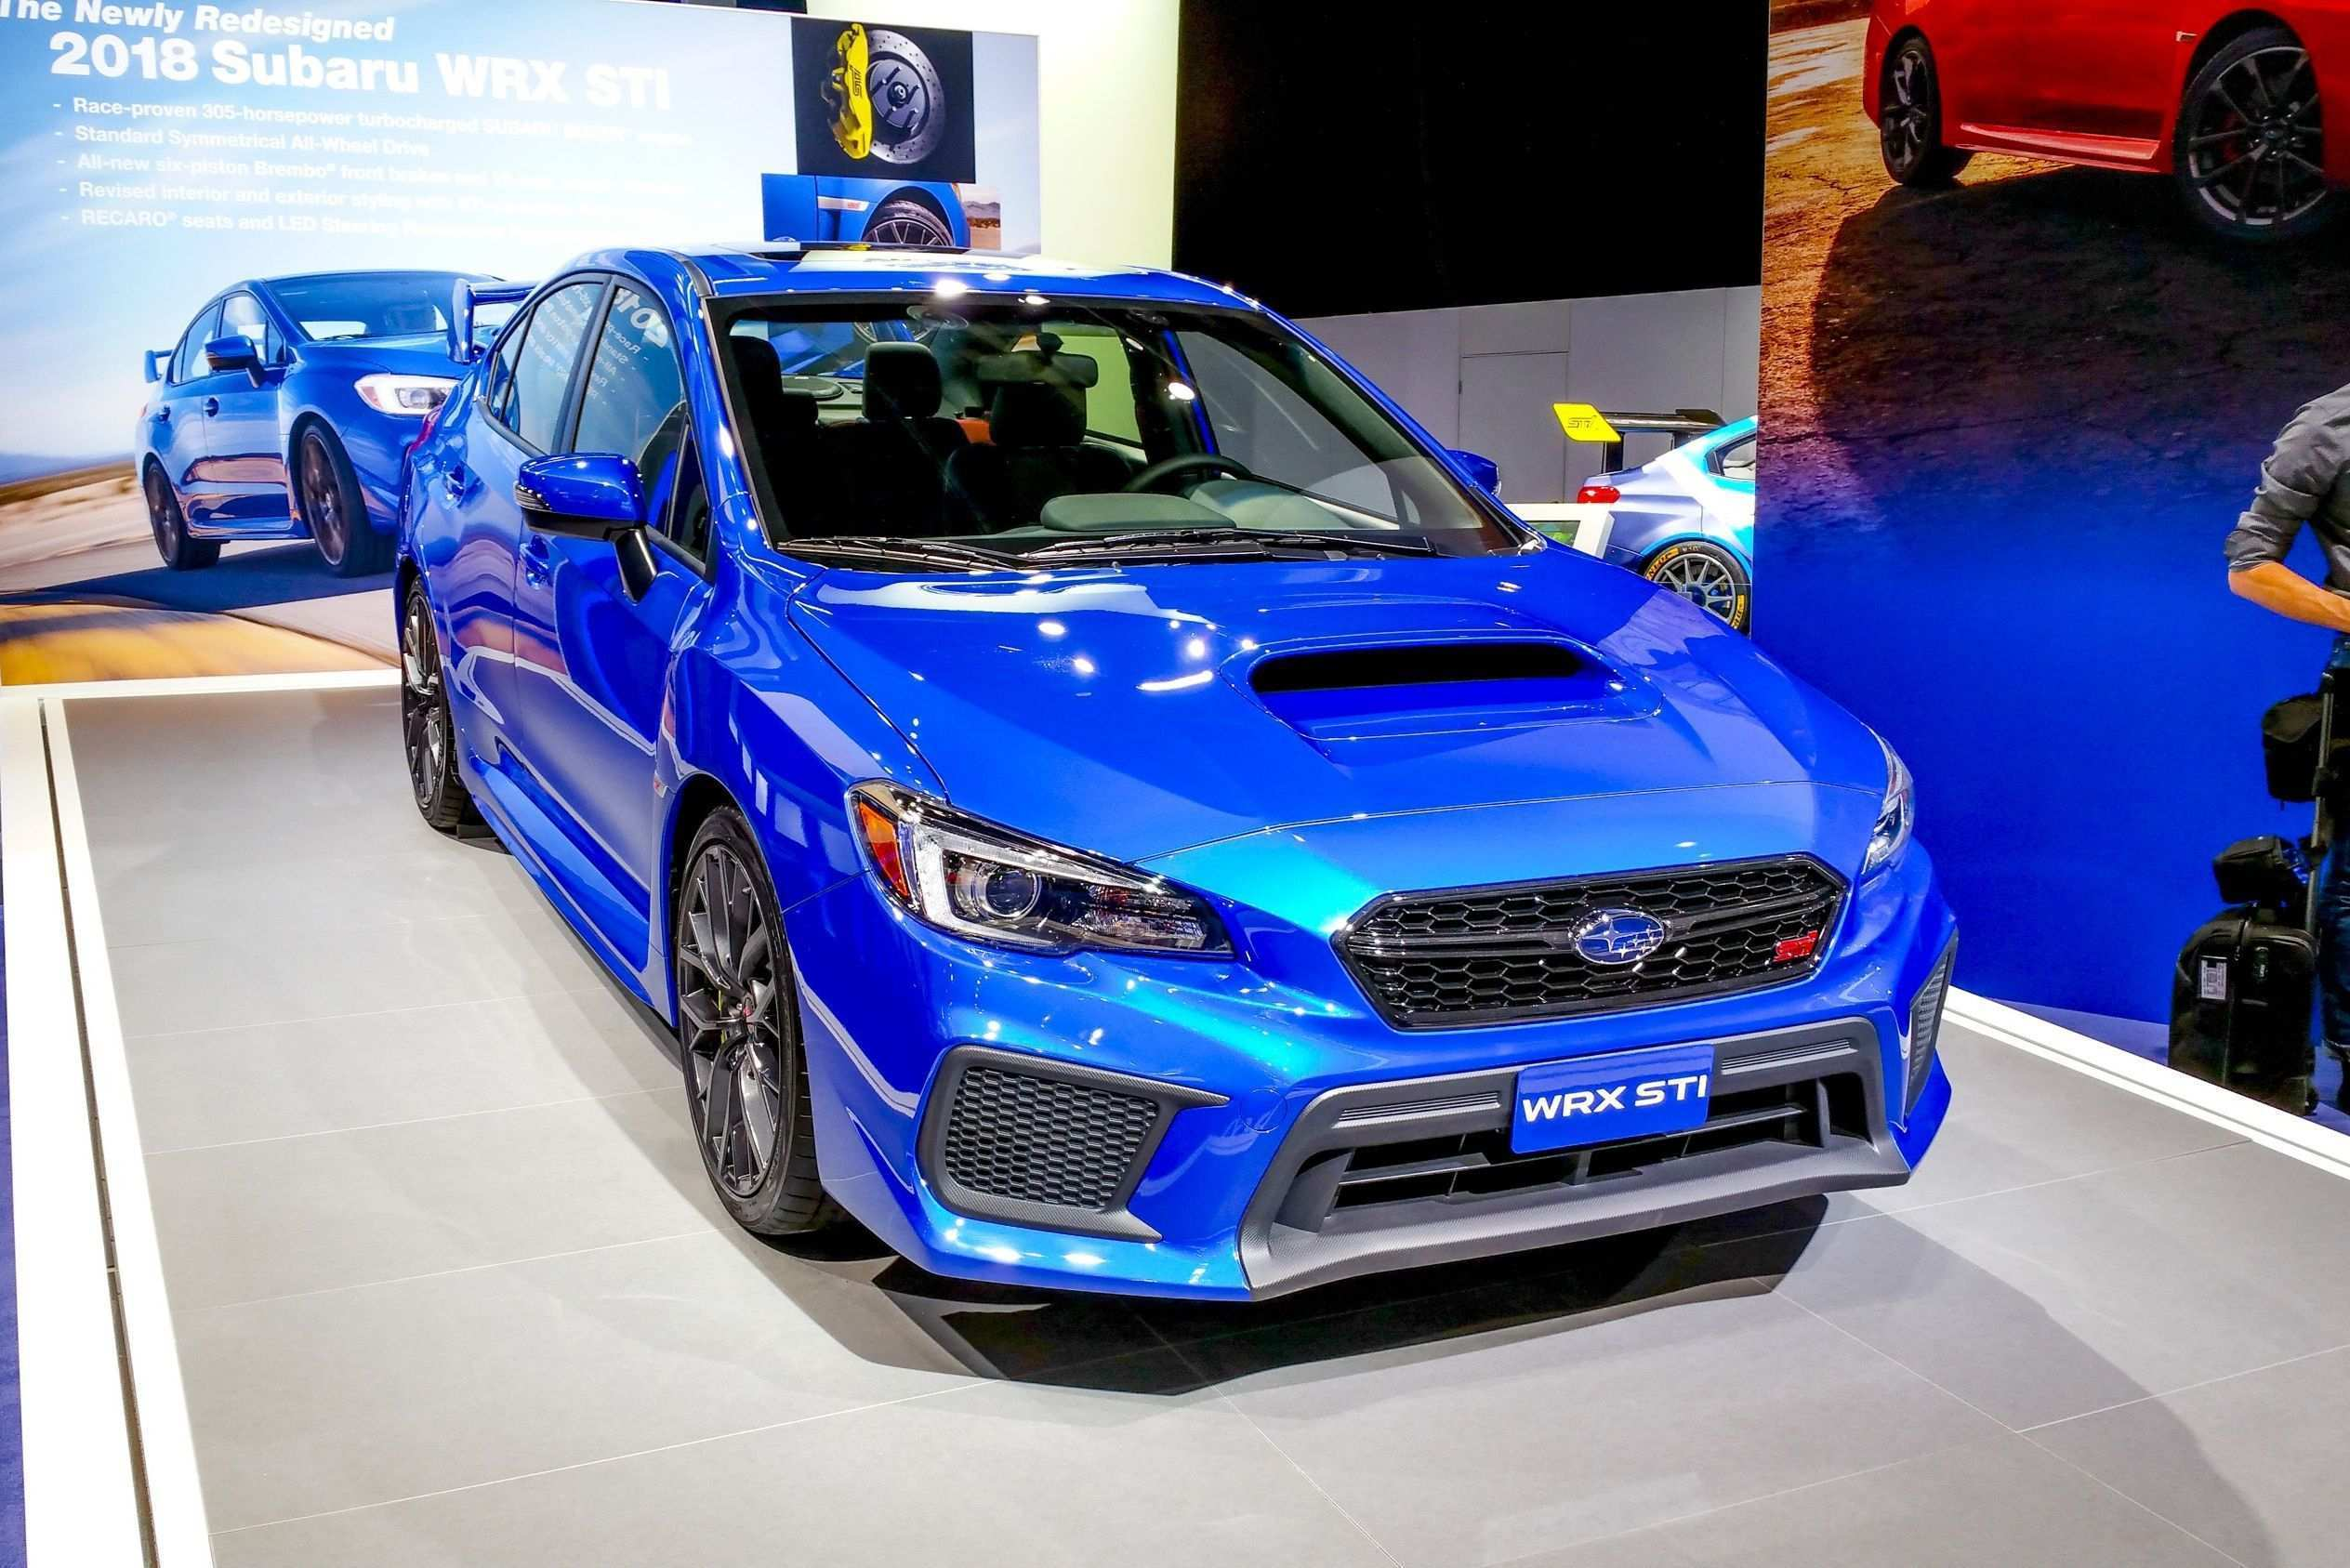 28 All New New 2019 Subaru Wrx Sti 0 60 Performance And New Engine Spesification with New 2019 Subaru Wrx Sti 0 60 Performance And New Engine